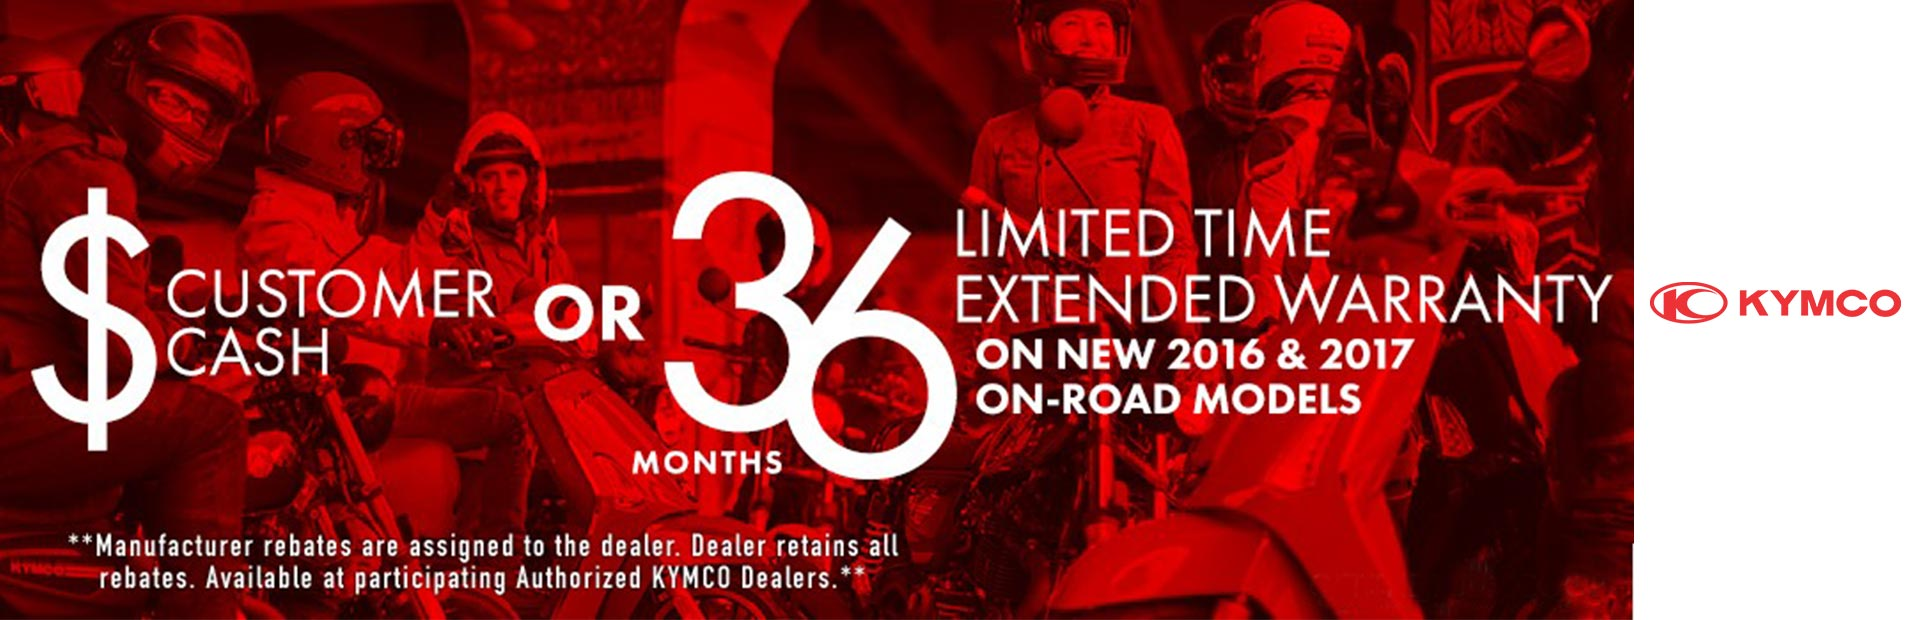 Kymco Customer Cash or Extended Warranty On Road